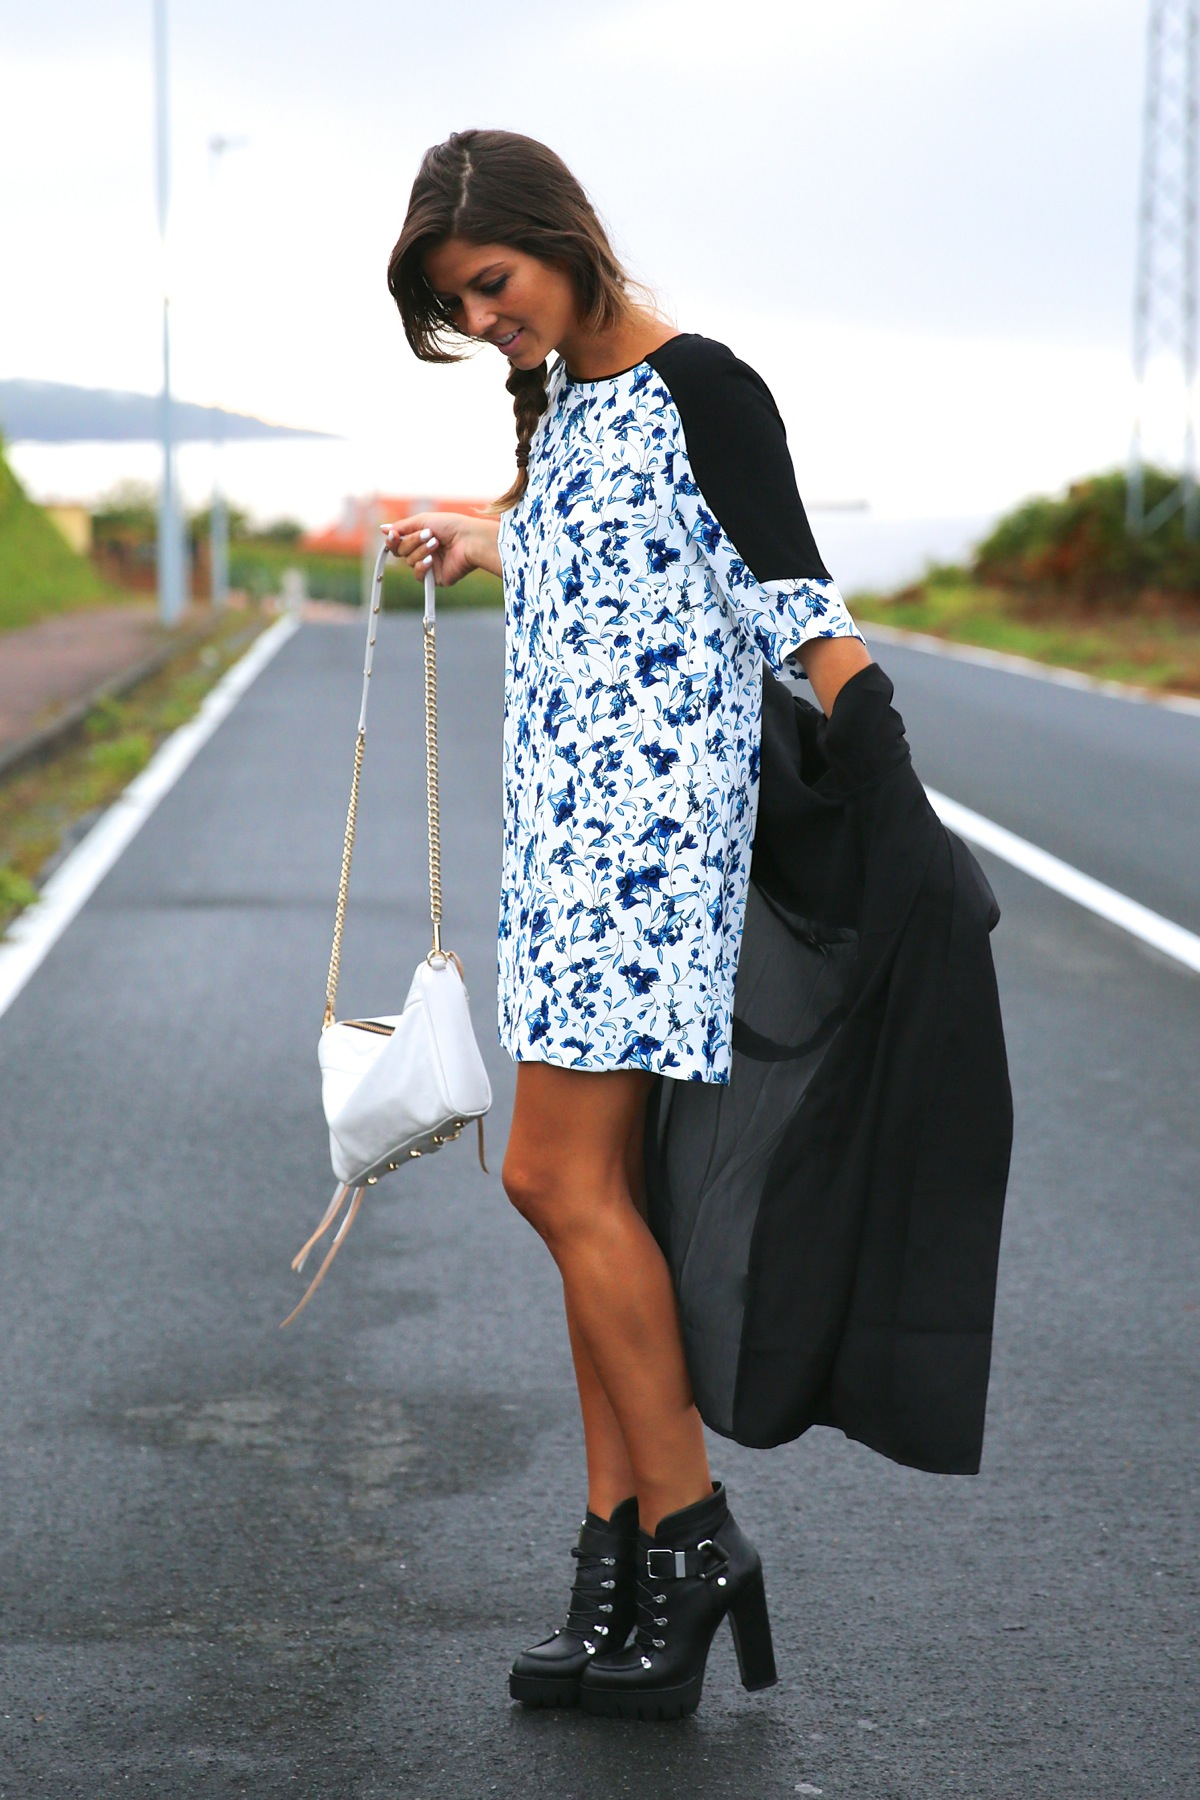 trendy_taste-look-outfit-street_style-ootd-blog-blogger-fashion_spain-moda_españa-combat_boots-botas_rock-parka-kimono-bolso_blanco-white_bag-galicia-vestido_flores-flower_print-dress-11